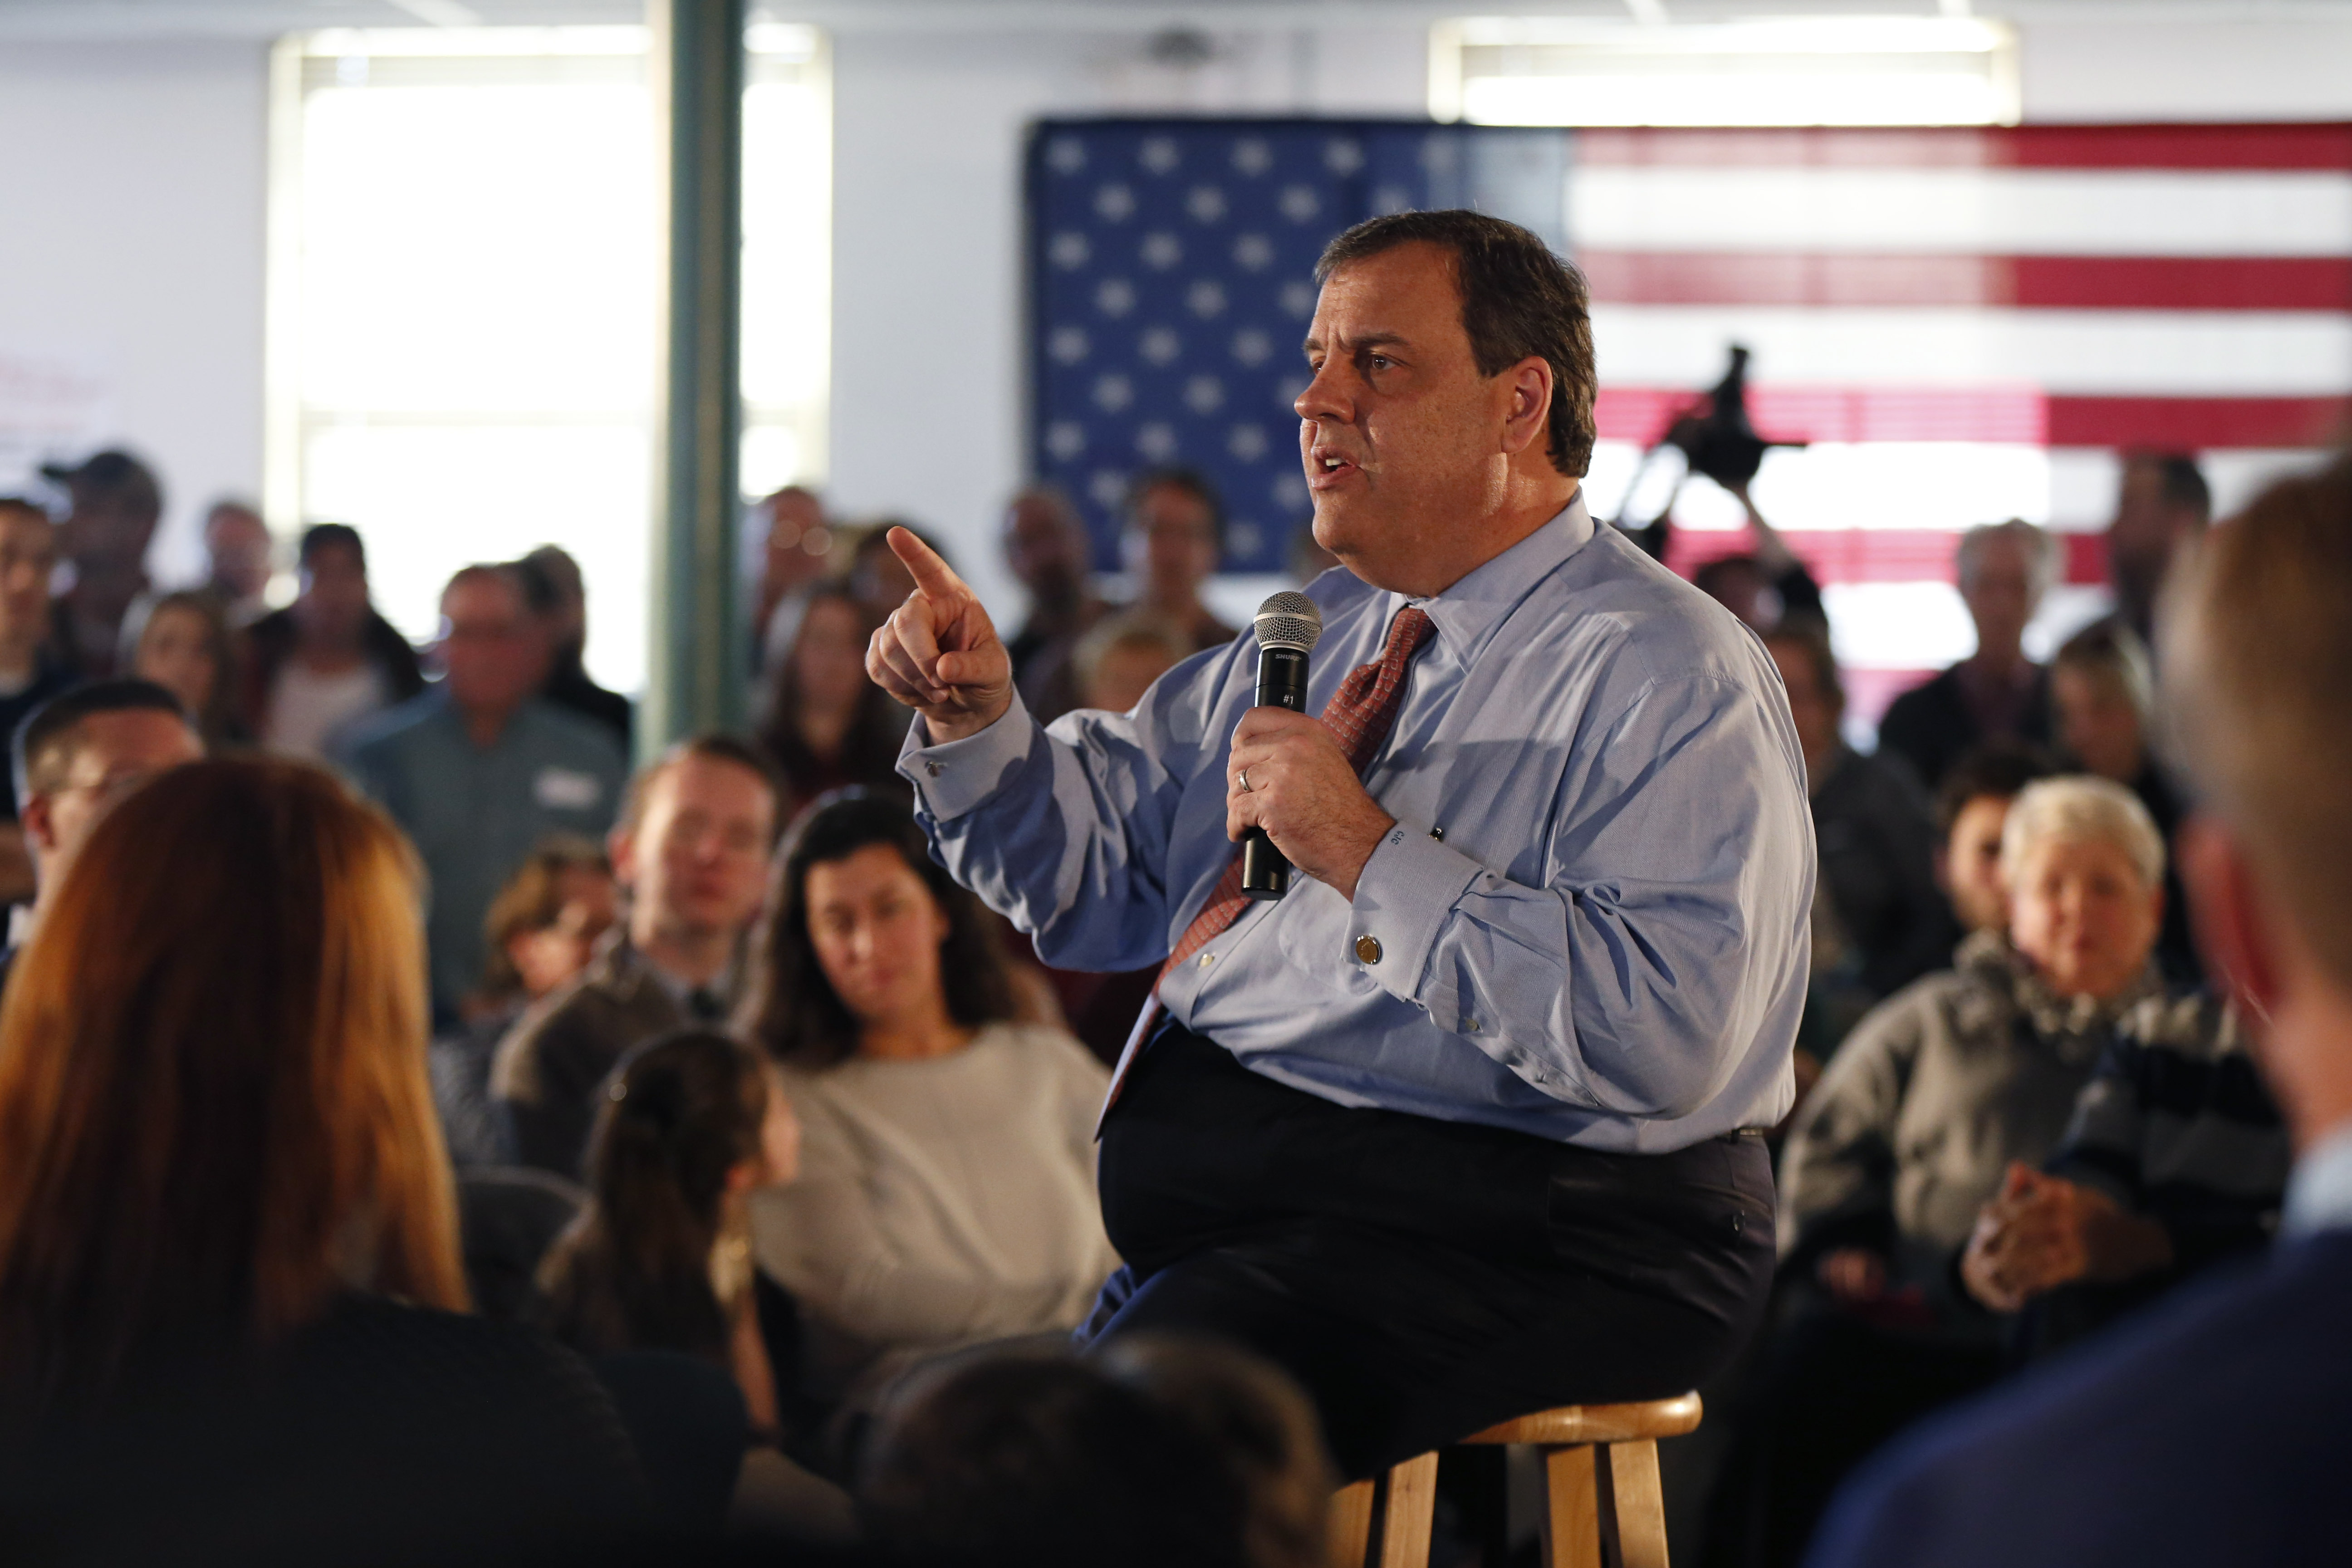 After Poor New Hampshire Showing, Christie Heads Home to Reassess Campaign